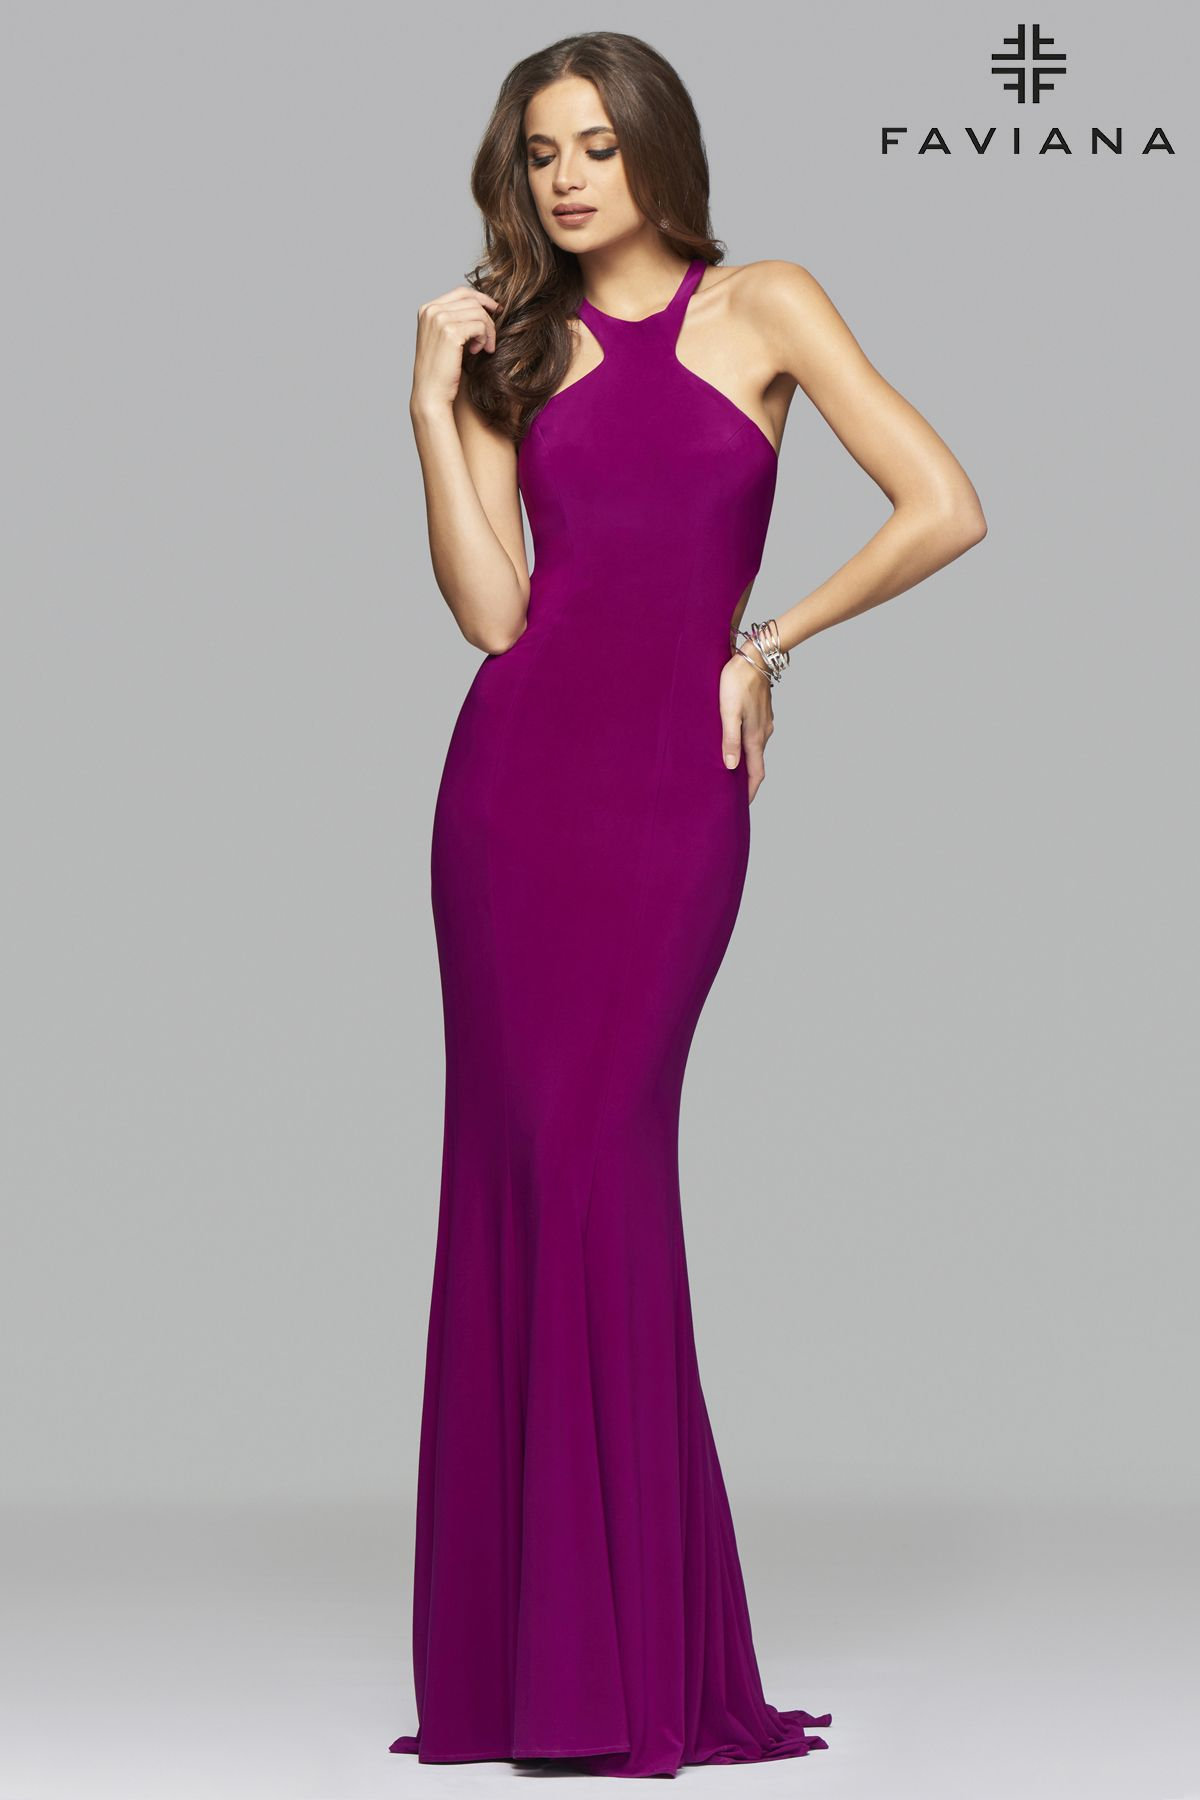 Faviana 7894 - International Prom Association | Faviana Prom Dresses ...